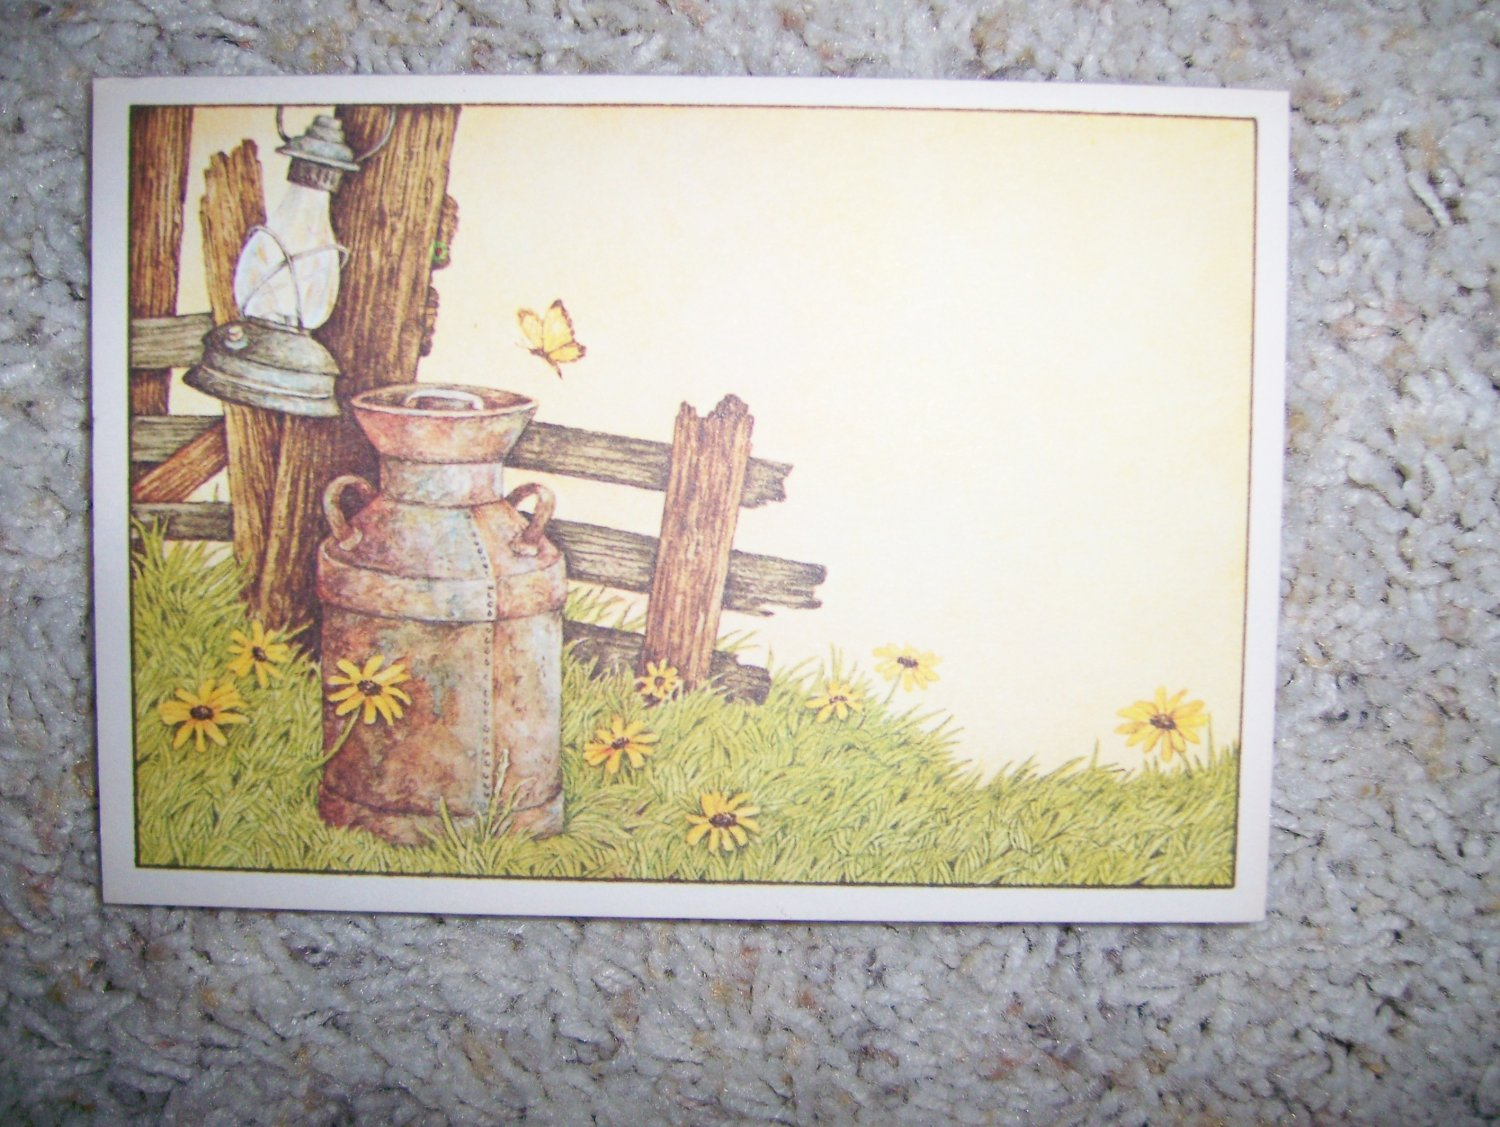 Post Cards Decorated With Old Style Milk Can BNK298